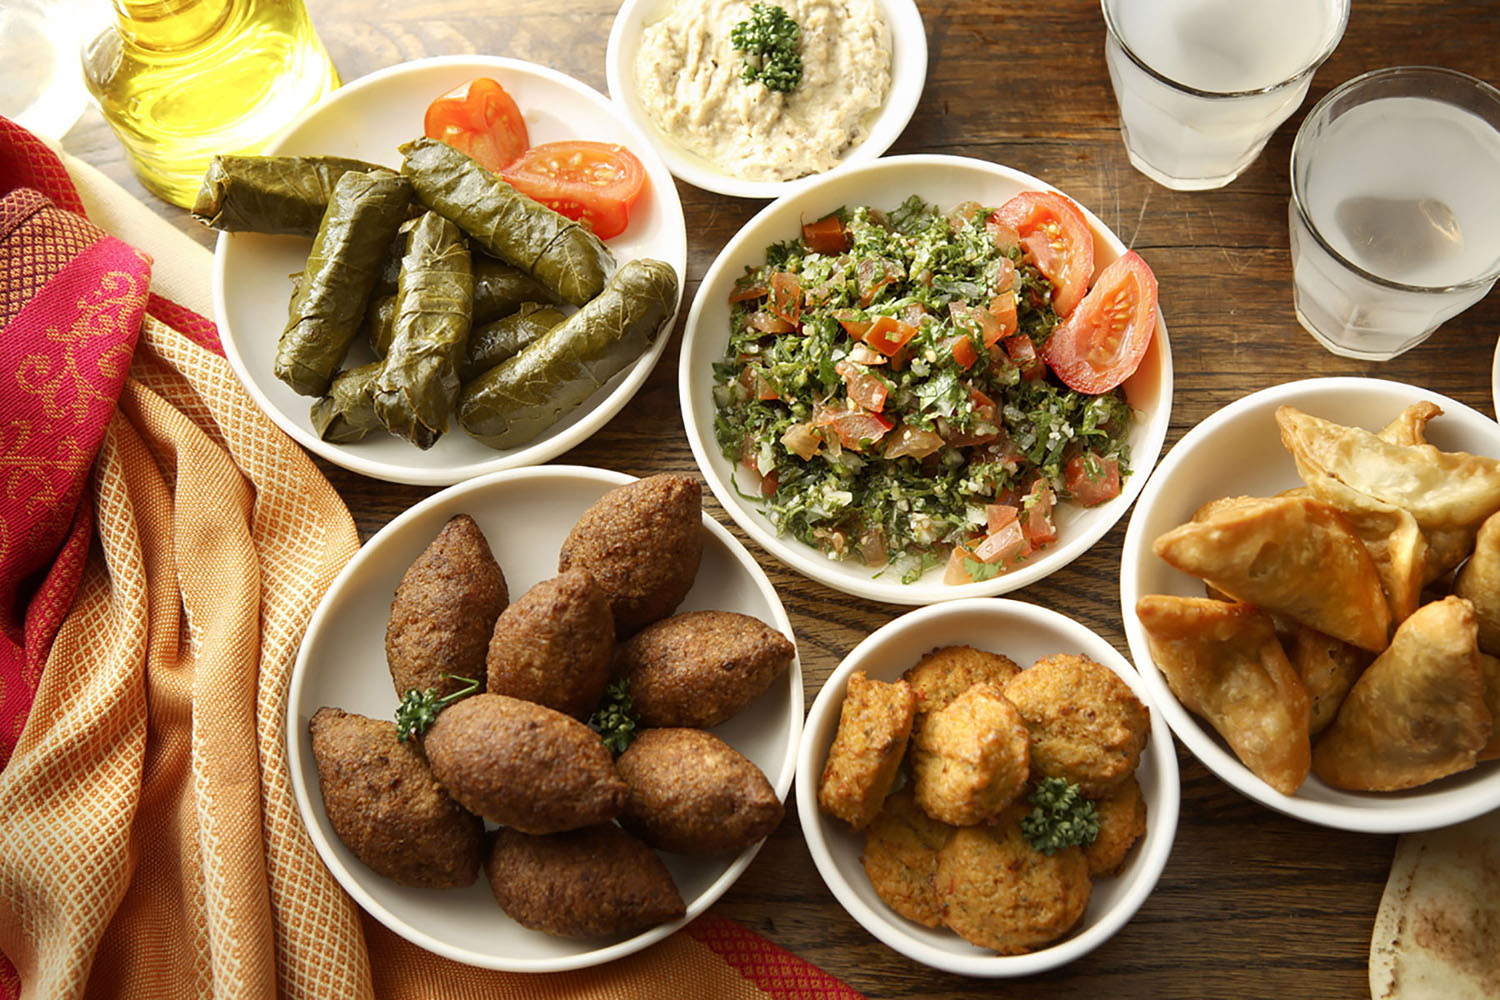 Mediterranean mezzes, including grape leaf rolls and falafel.